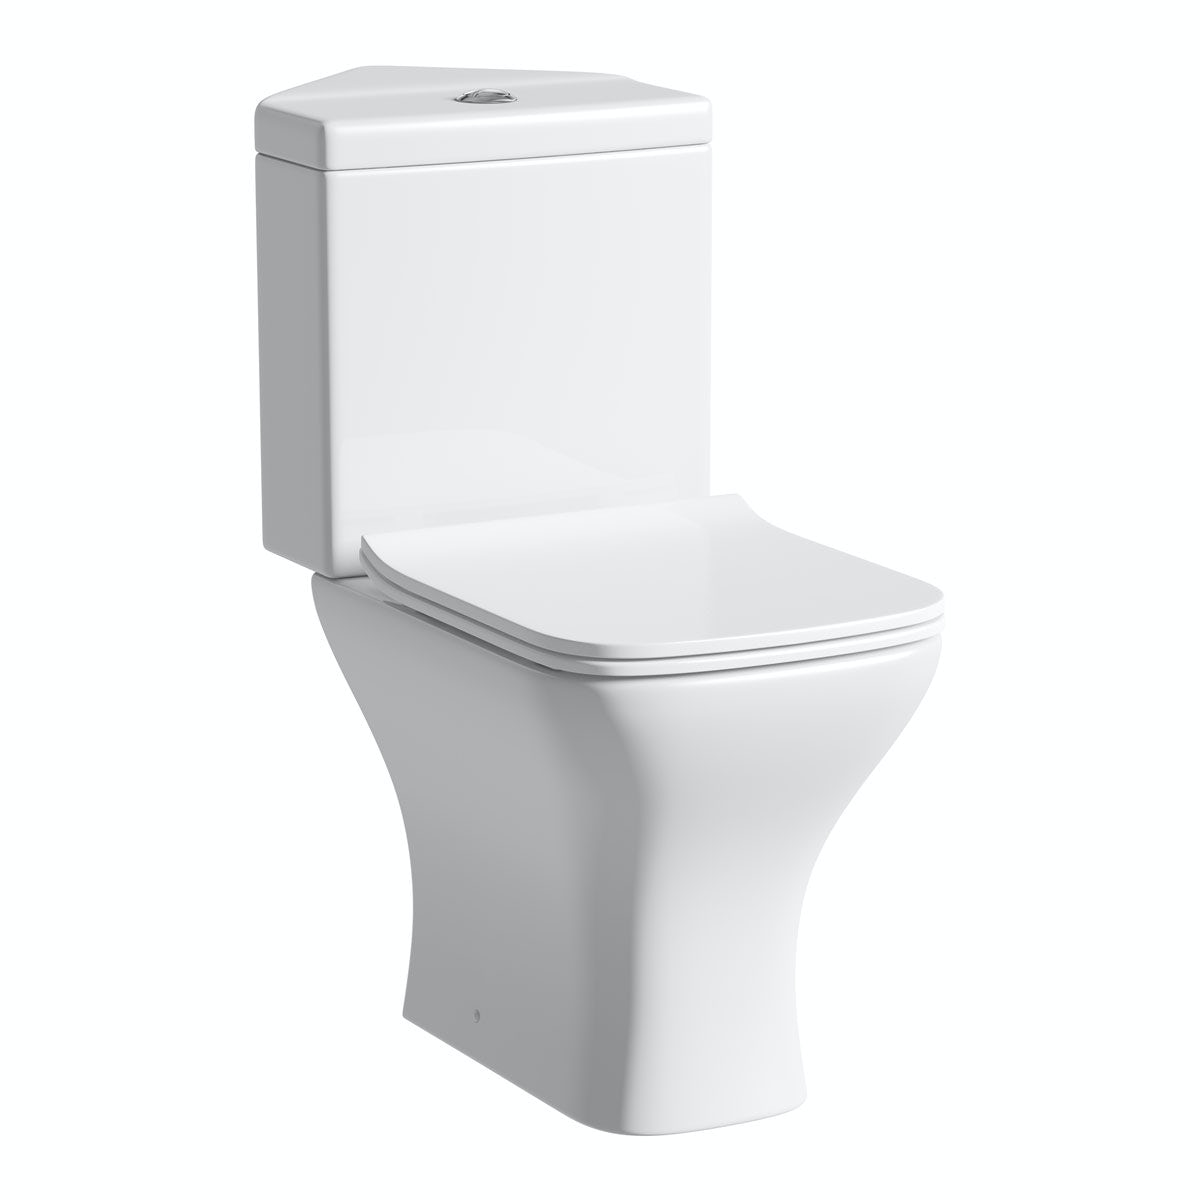 Compact Square corner close coupled toilet with slimline soft close toilet seat